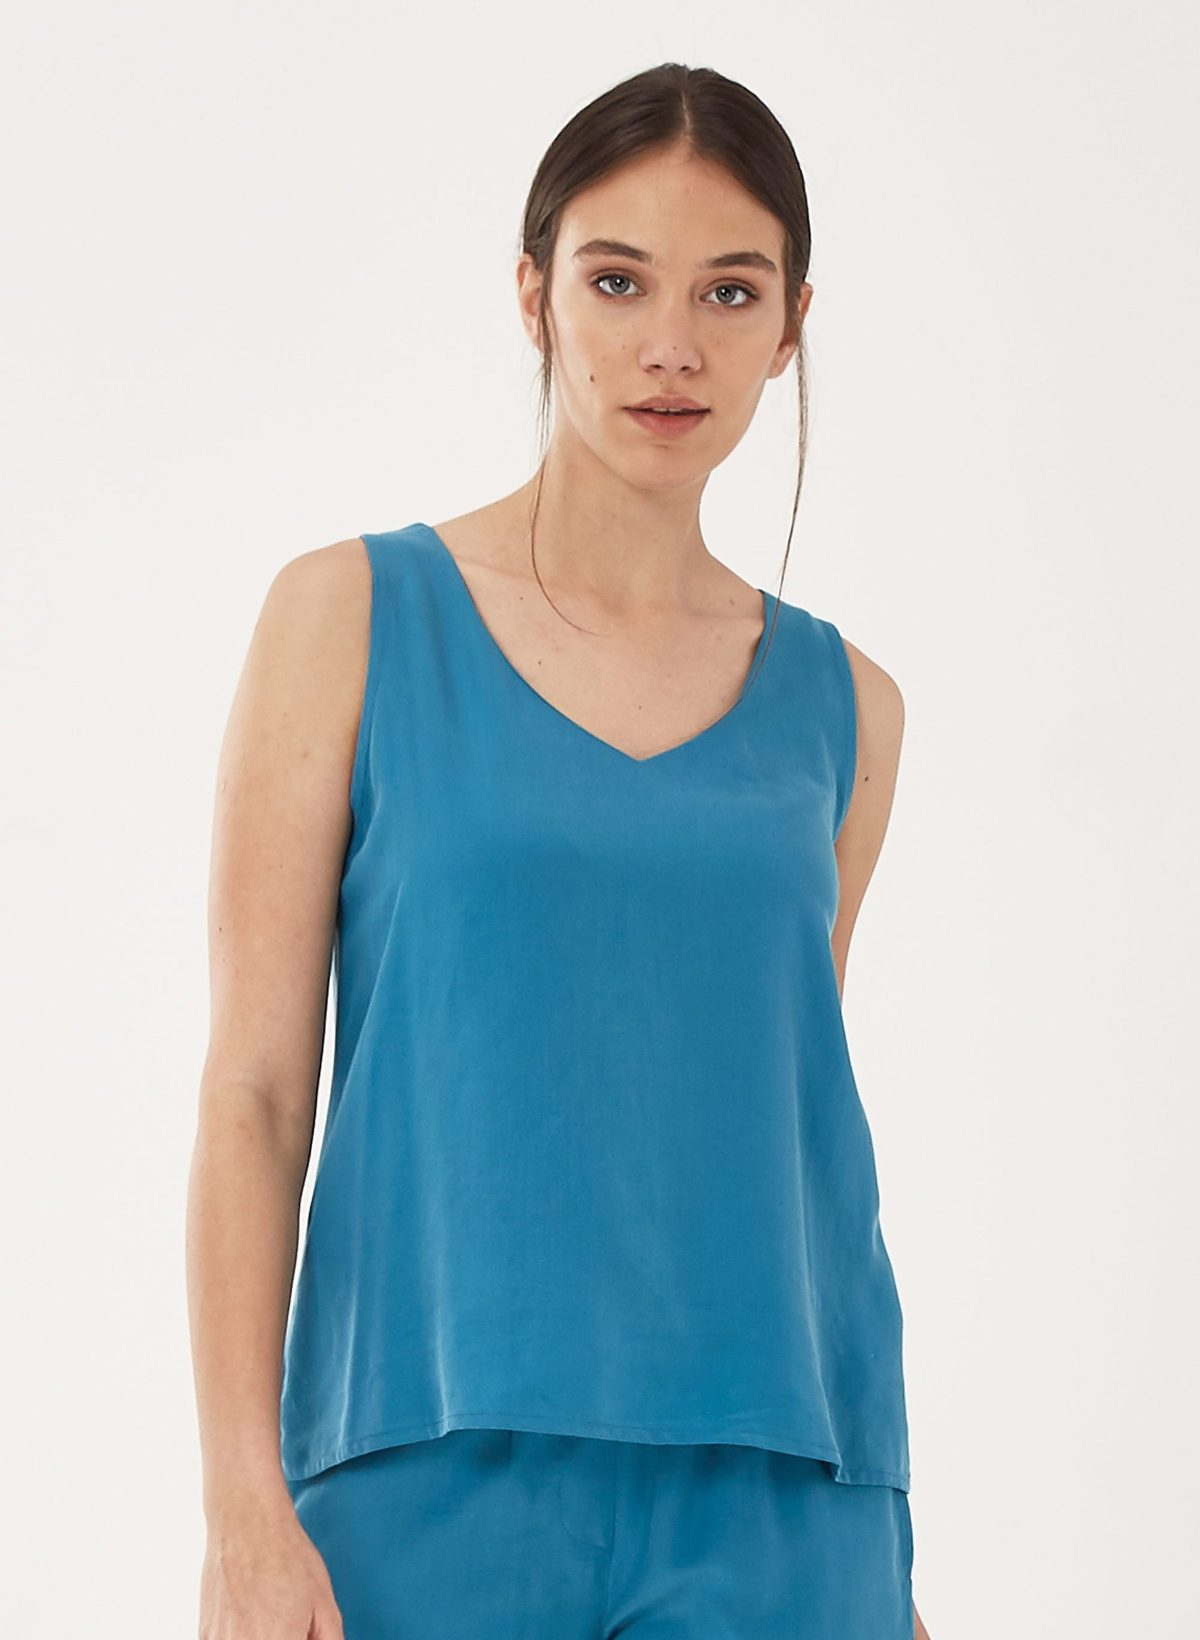 Organication Sommer-Top aus Tencel